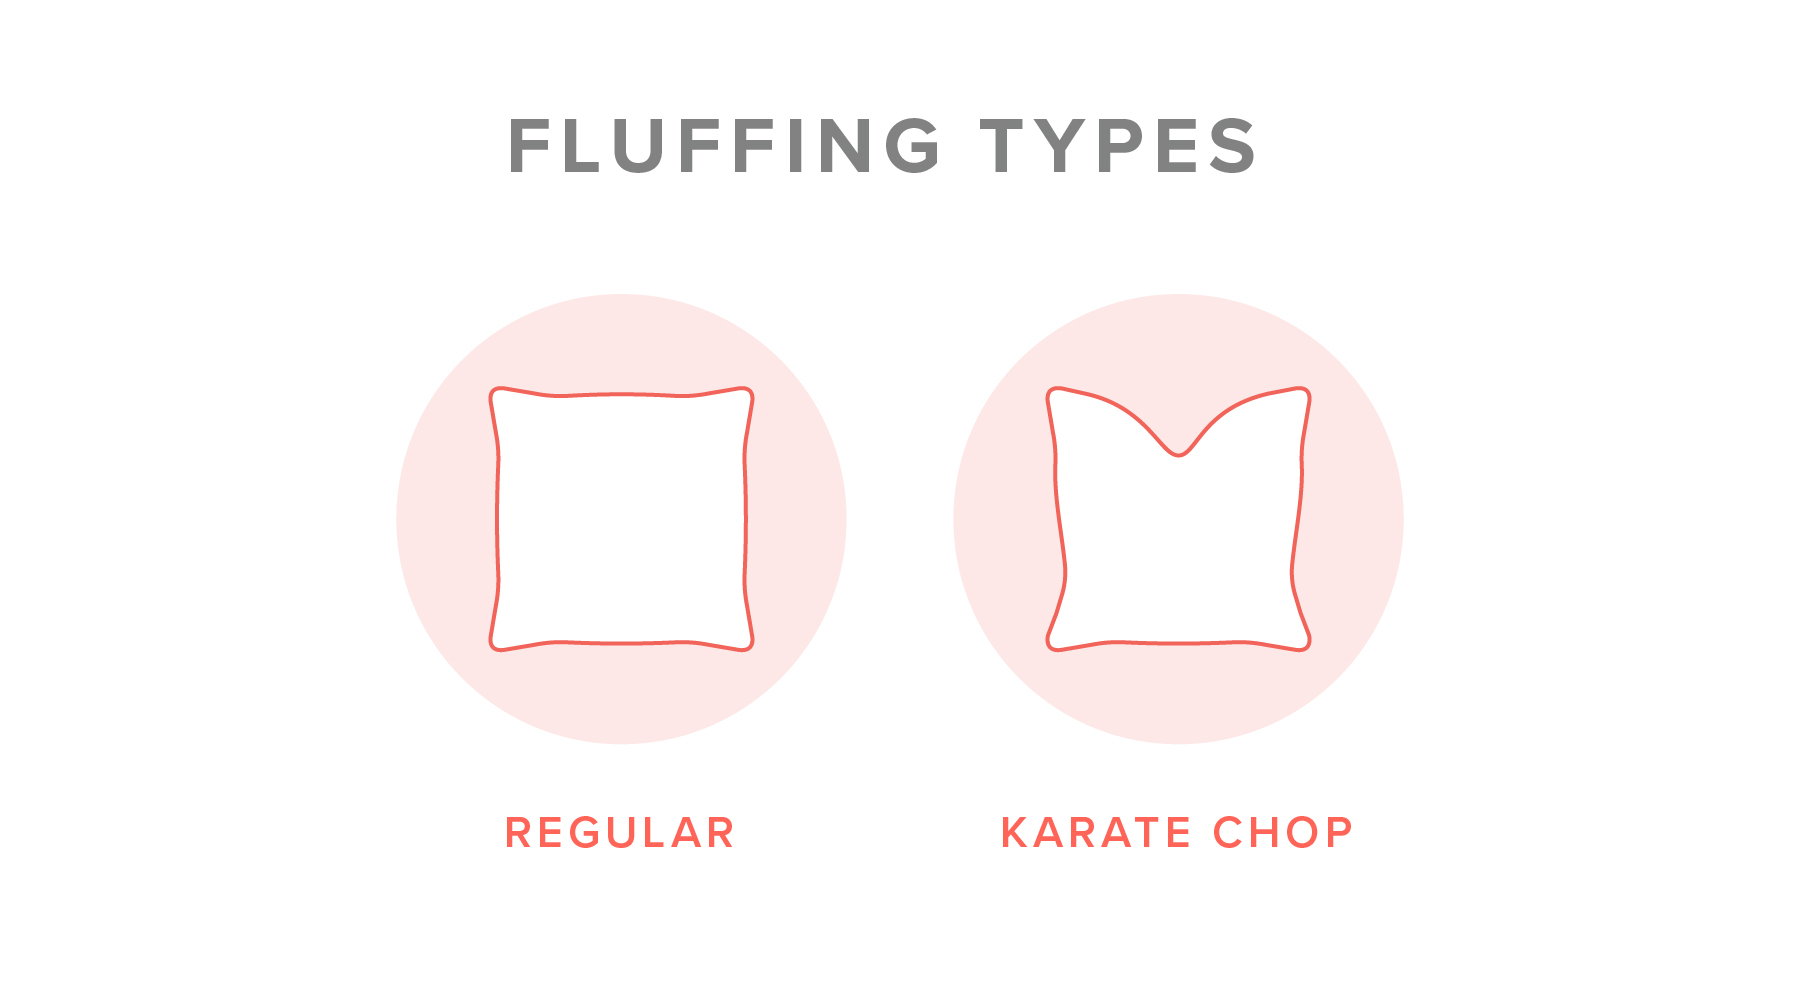 Illustration showing the different ways of fluffing a throw pillow